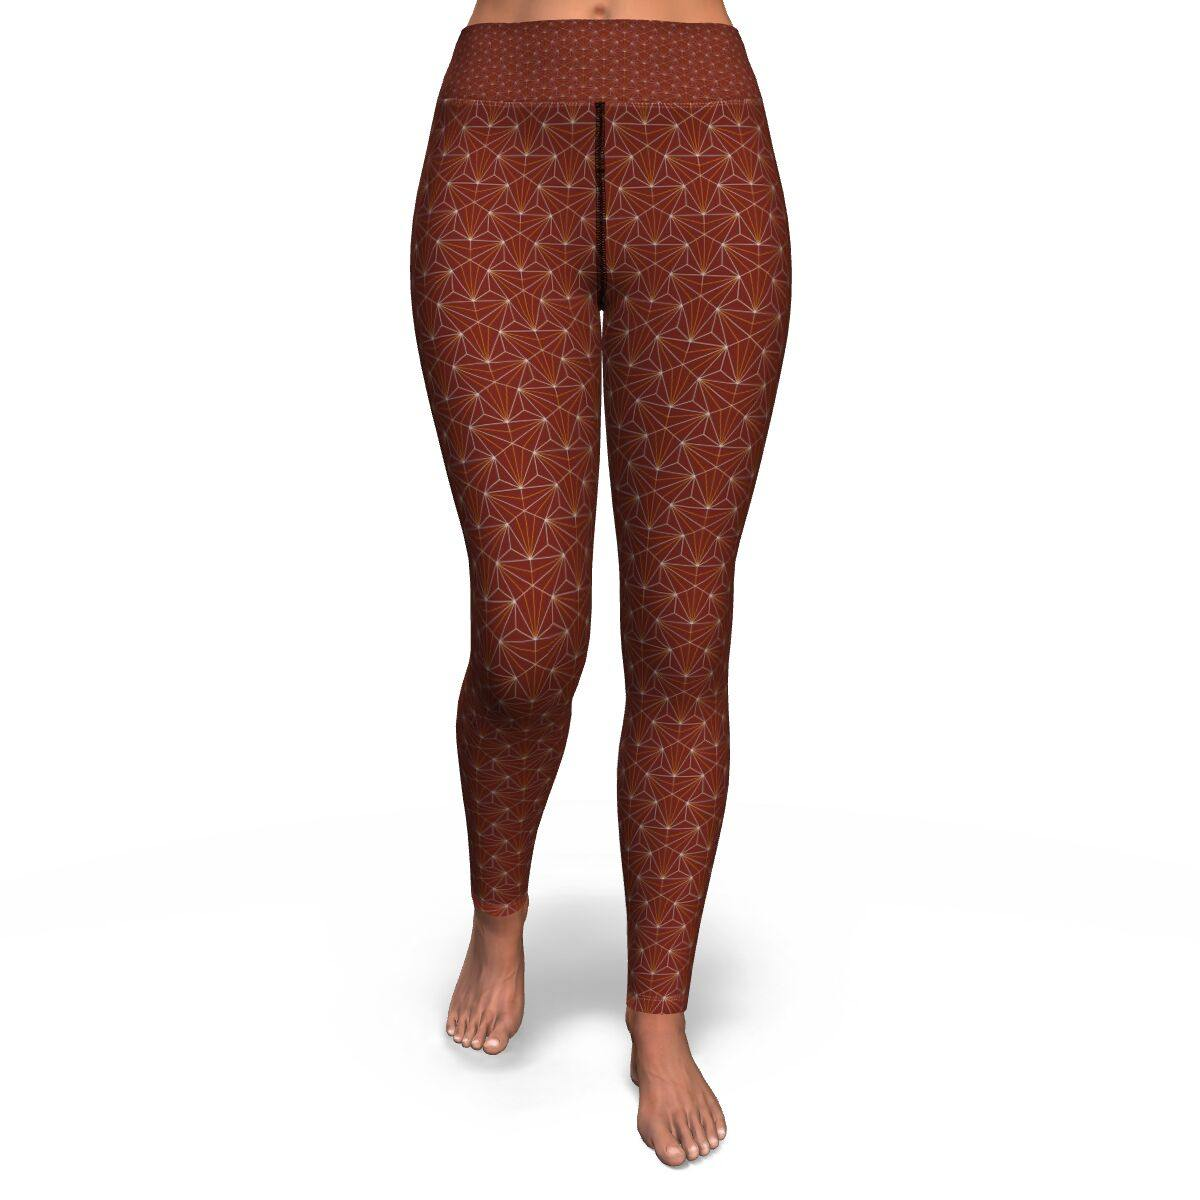 Terra Cotta Sacred Connections Premium Yoga Leggings - Manifestie